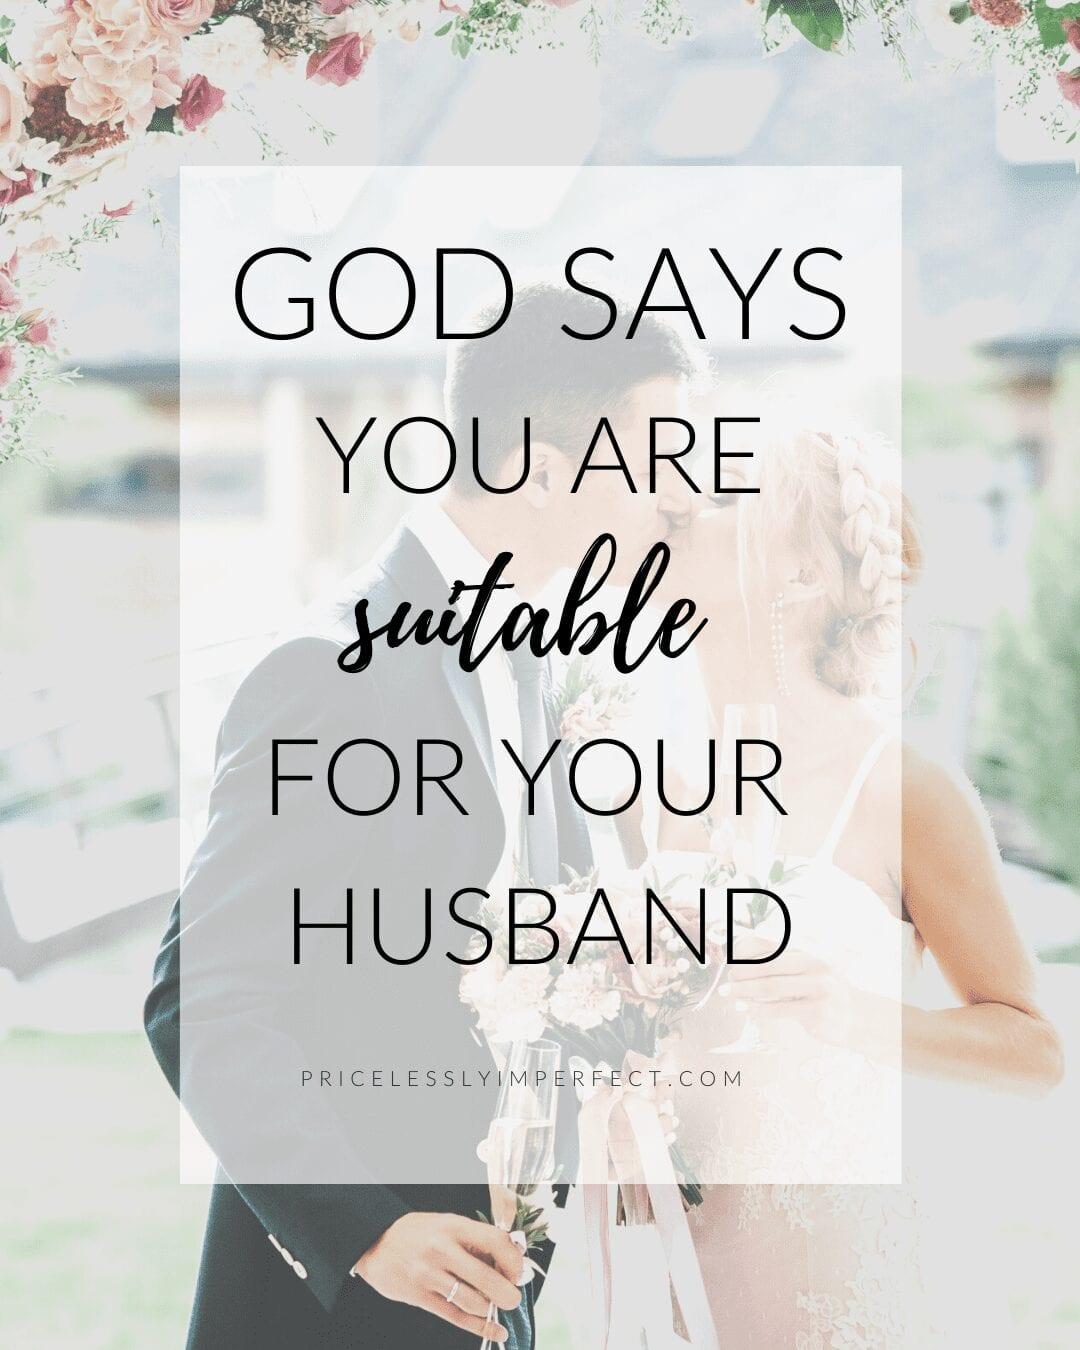 God says you are suitable for your husband according to Genesis 2:18